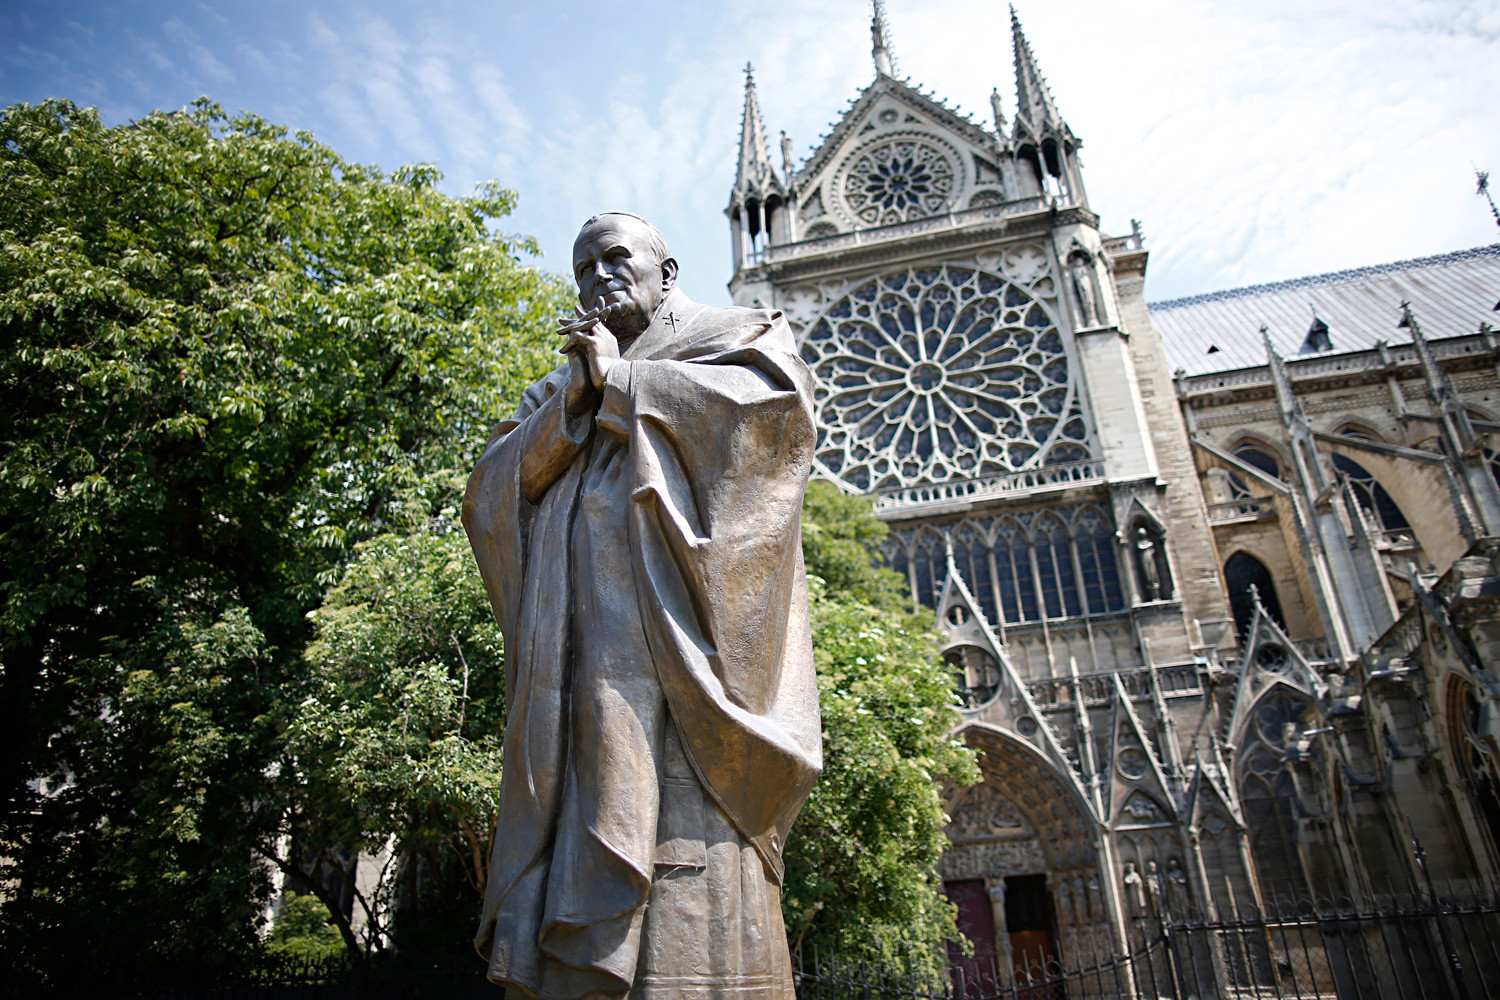 The sculpture of Pope John Paul II near the Notre-Dame Cathedral in Paris